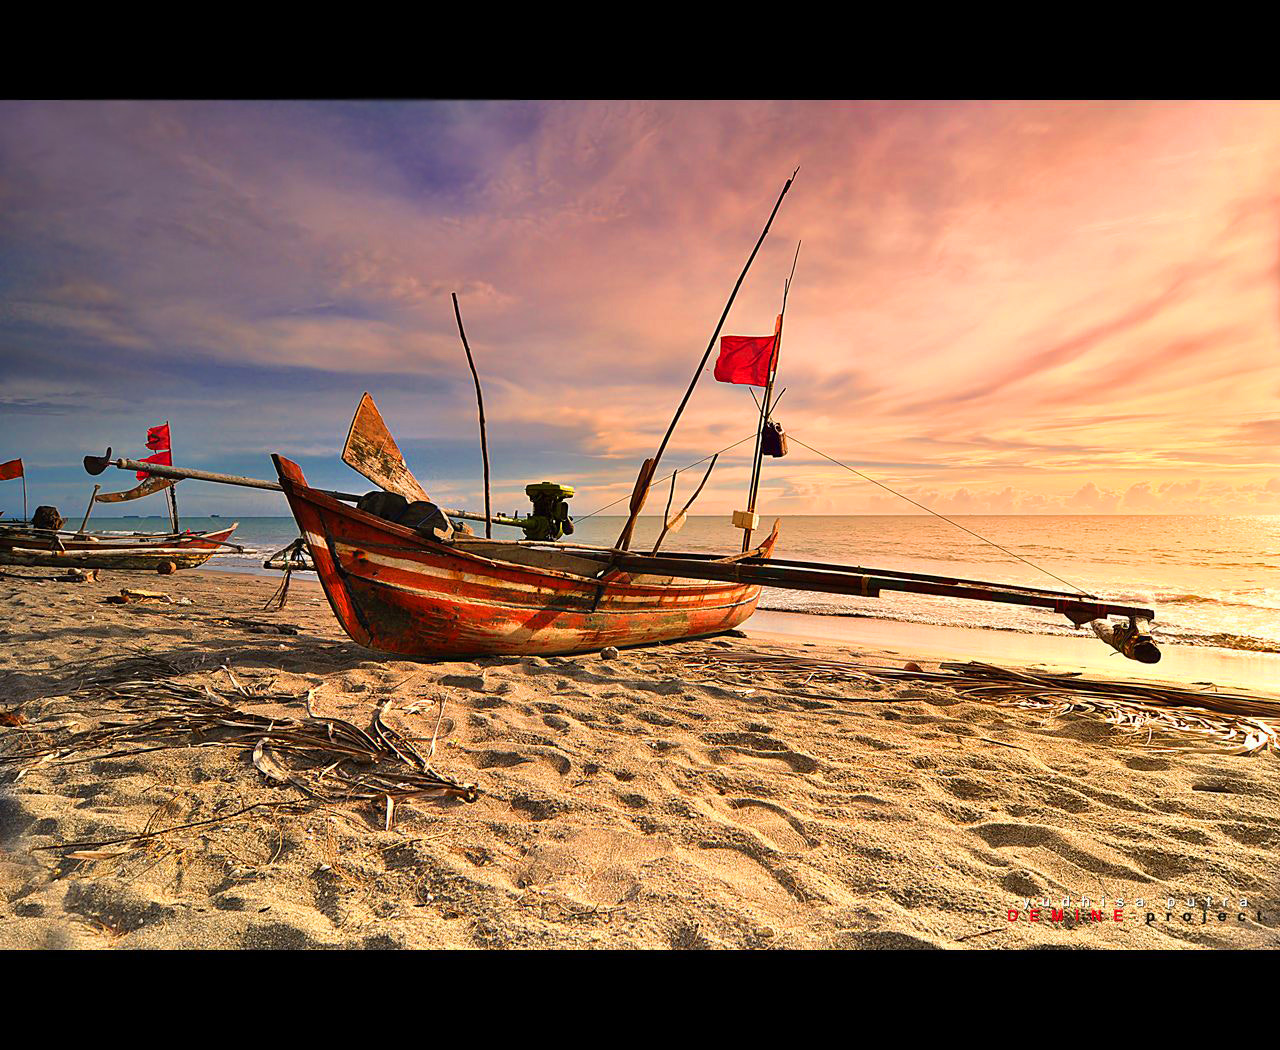 Photograph Silent in Sunset by Yudhisa Putra on 500px